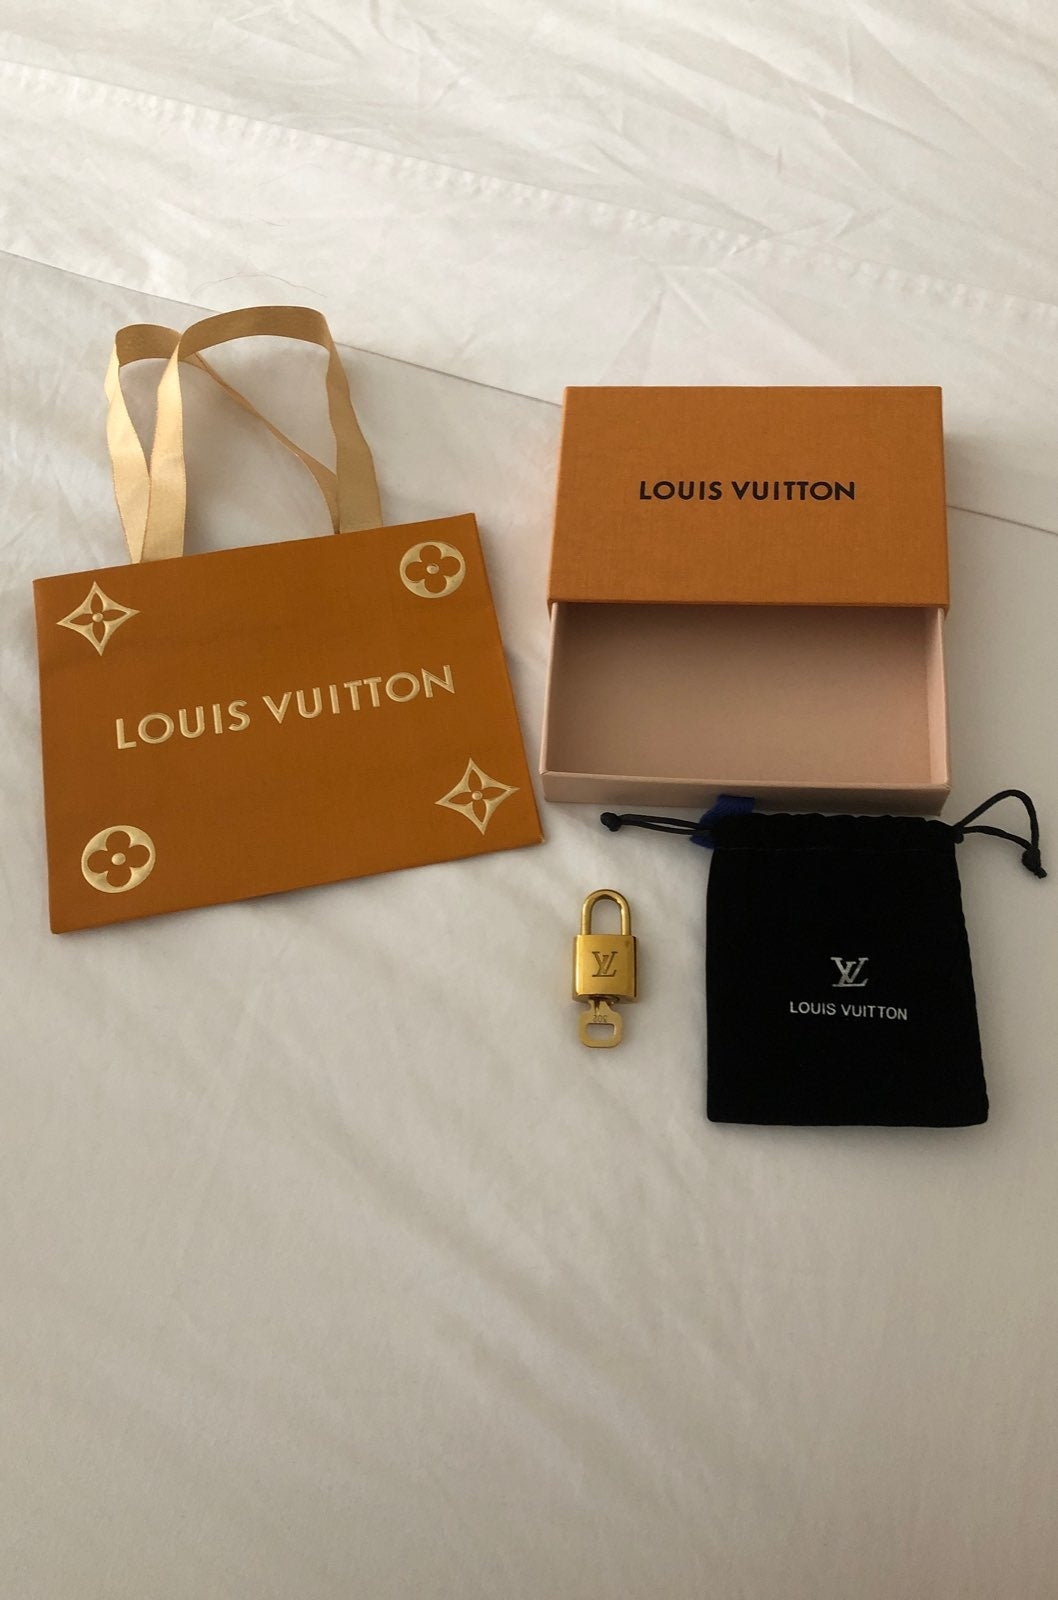 authentic Louis Vuitton lock